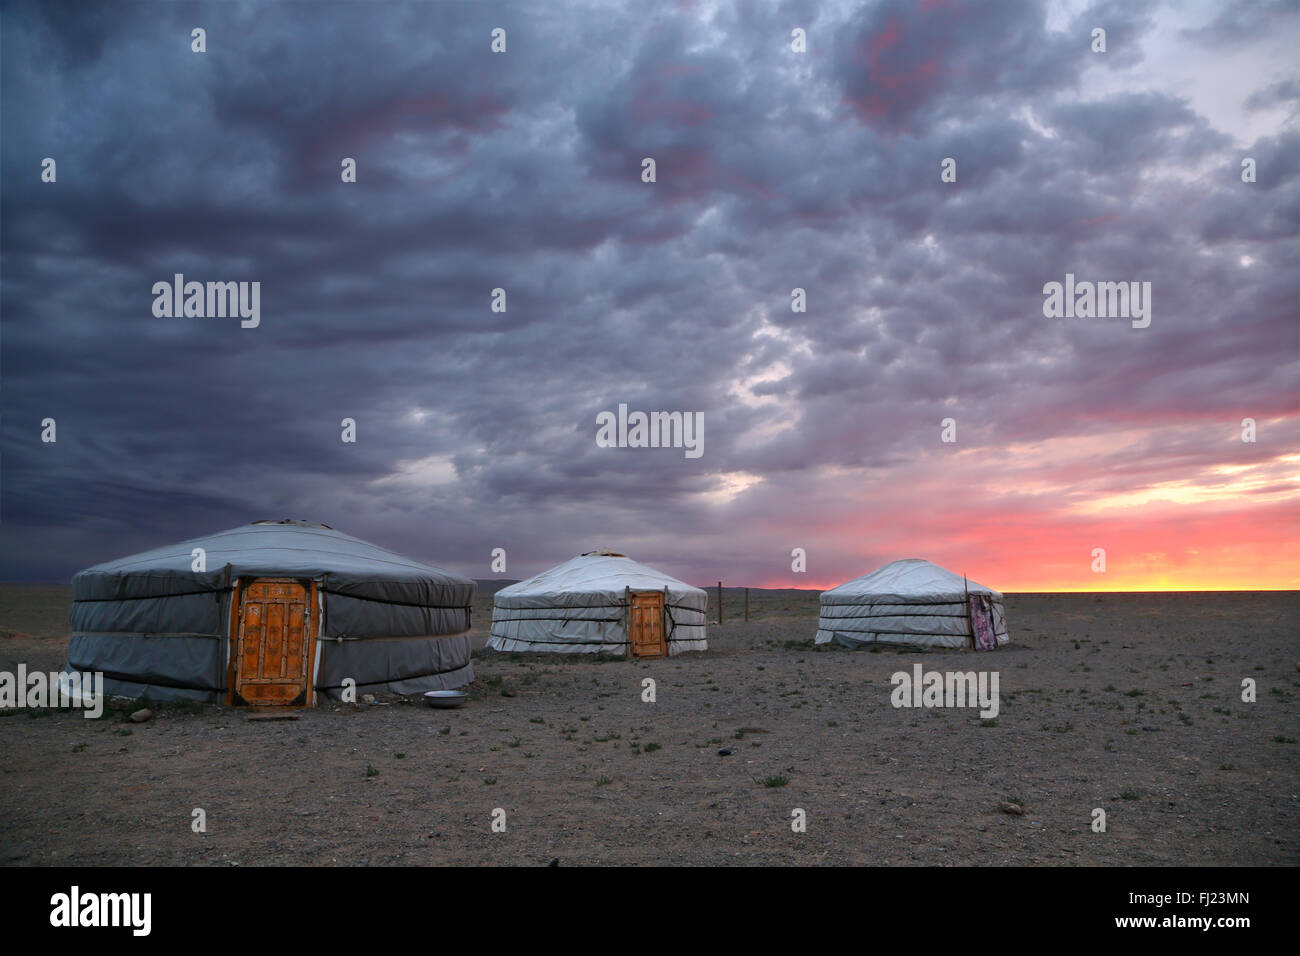 La Mongolie lever du soleil sur un camp de yourte dans la région de Gobi Photo Stock